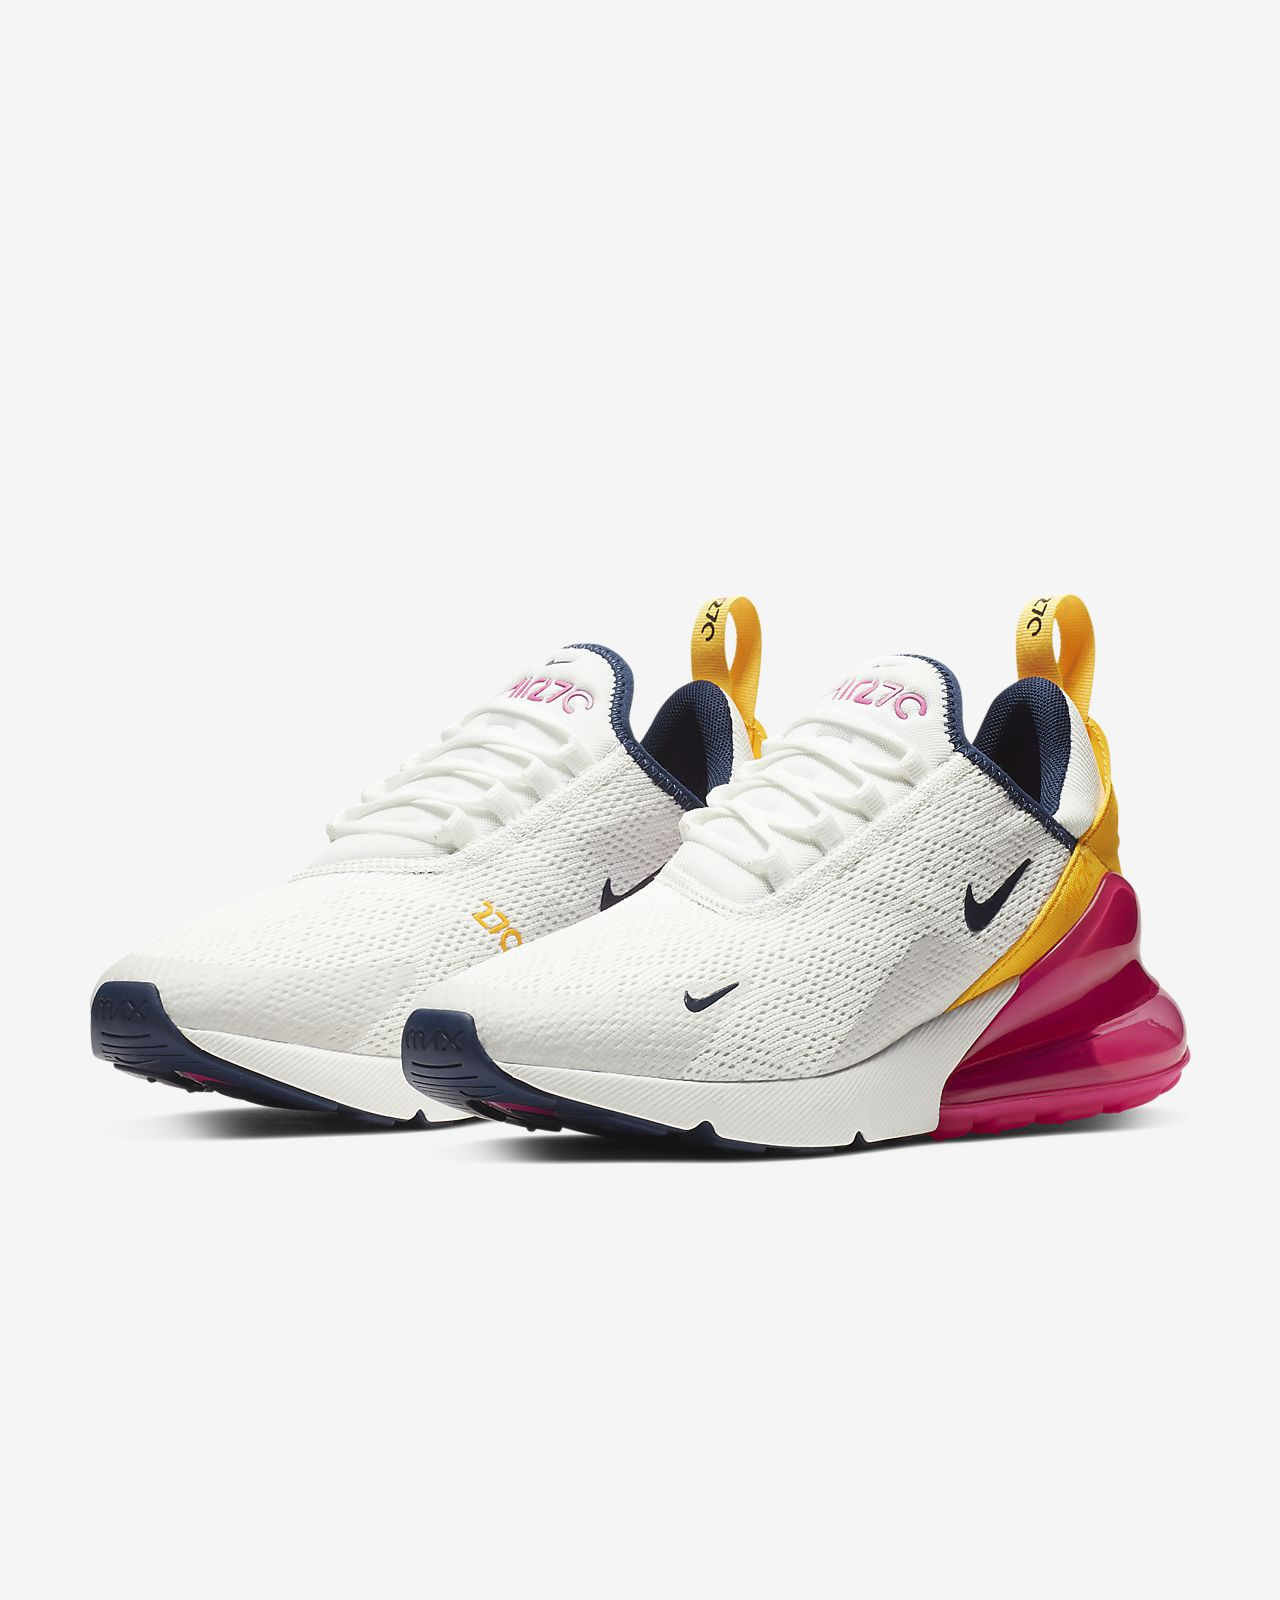 new product 17a64 b2fb2 ... Nike Air Max 270 Premium Womens Shoe